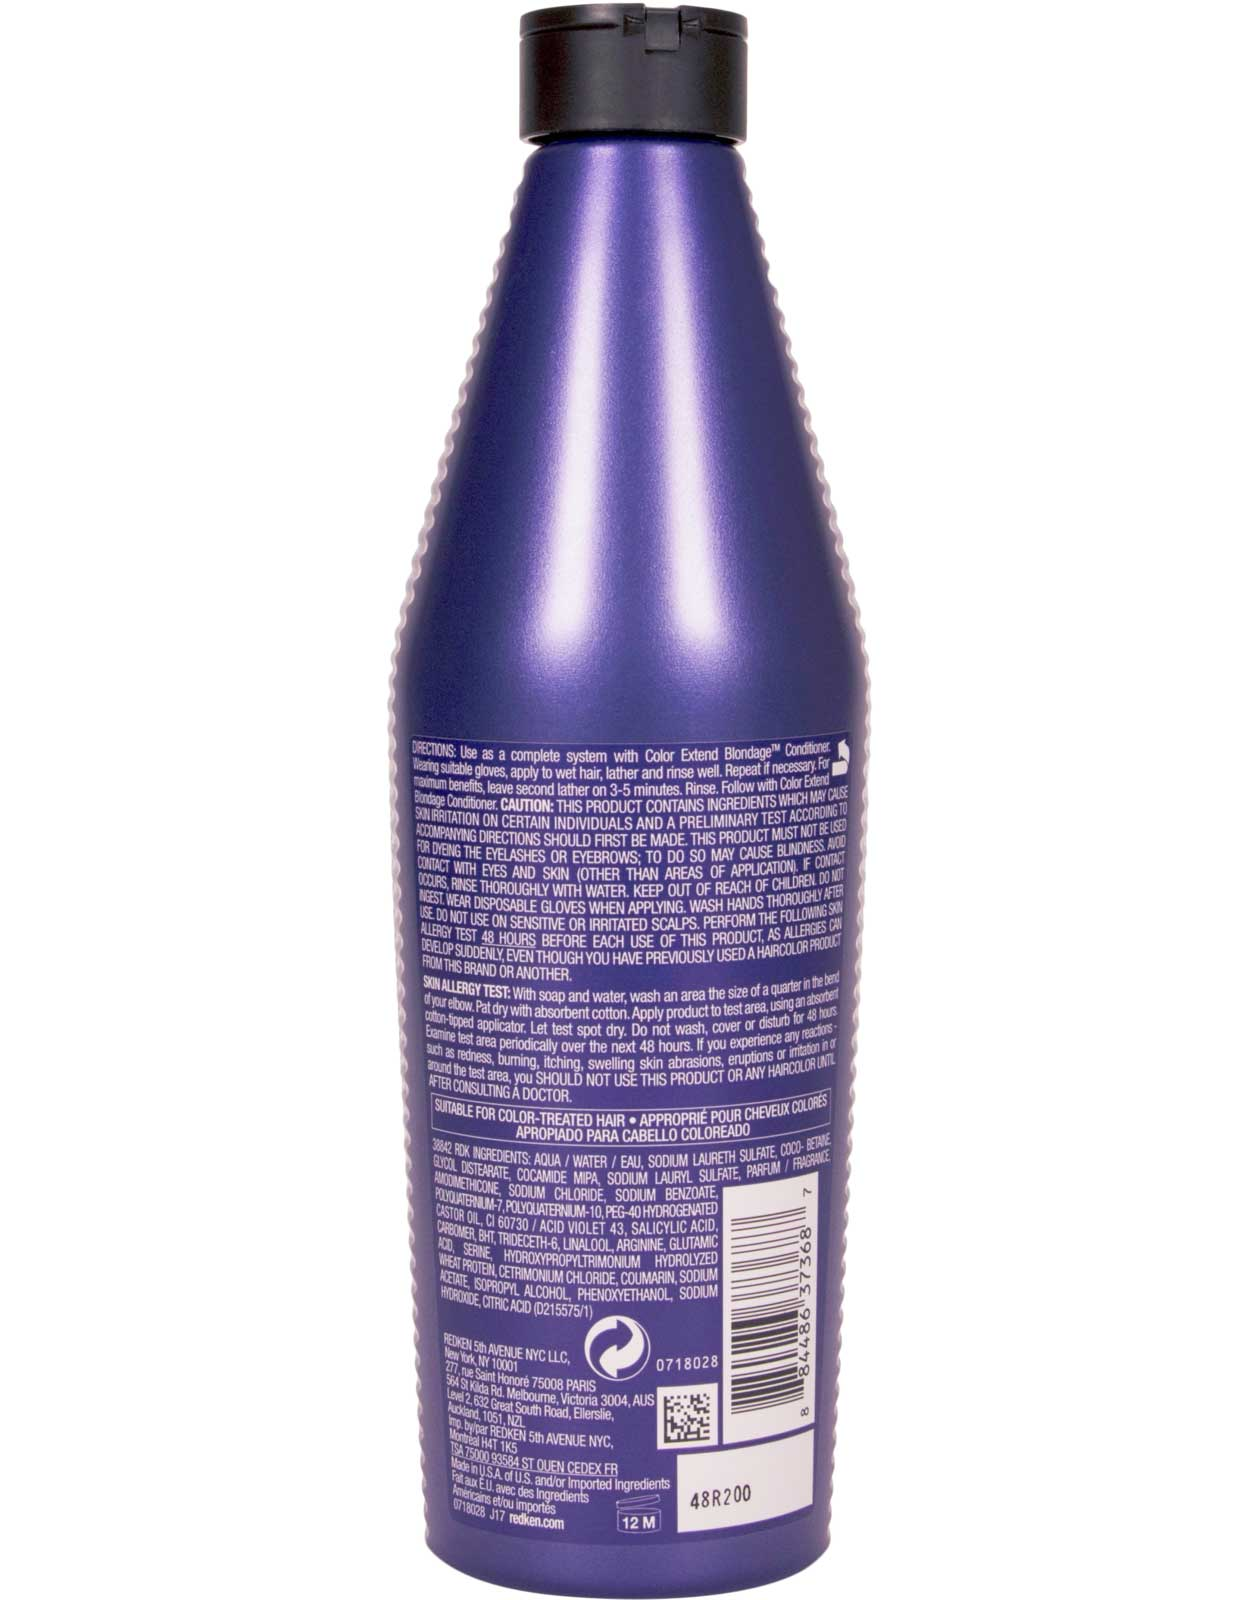 Redken color extend blondage shampoo back.jpg